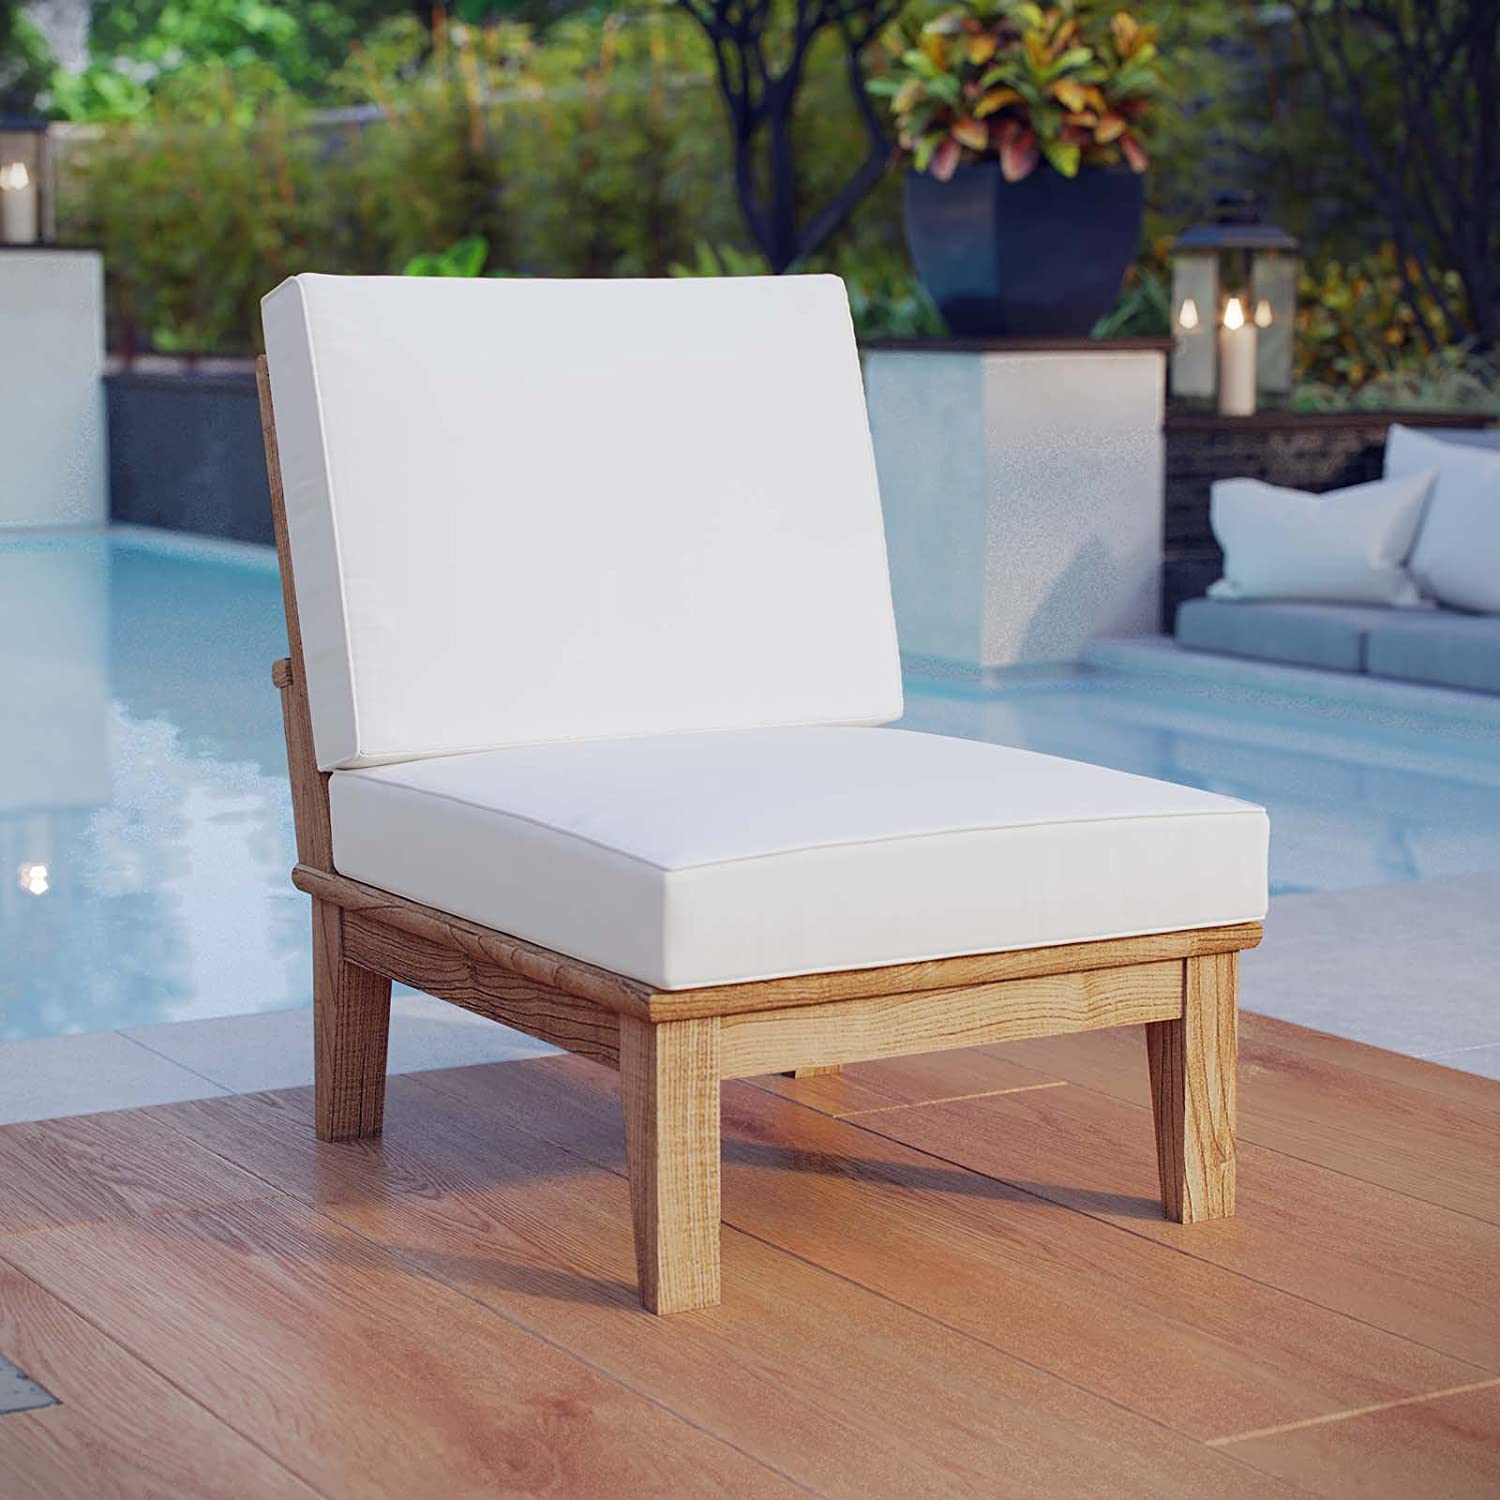 Modway Marina Premium Grade A Teak Wood Outdoor Patio Armless Chair, Natural White